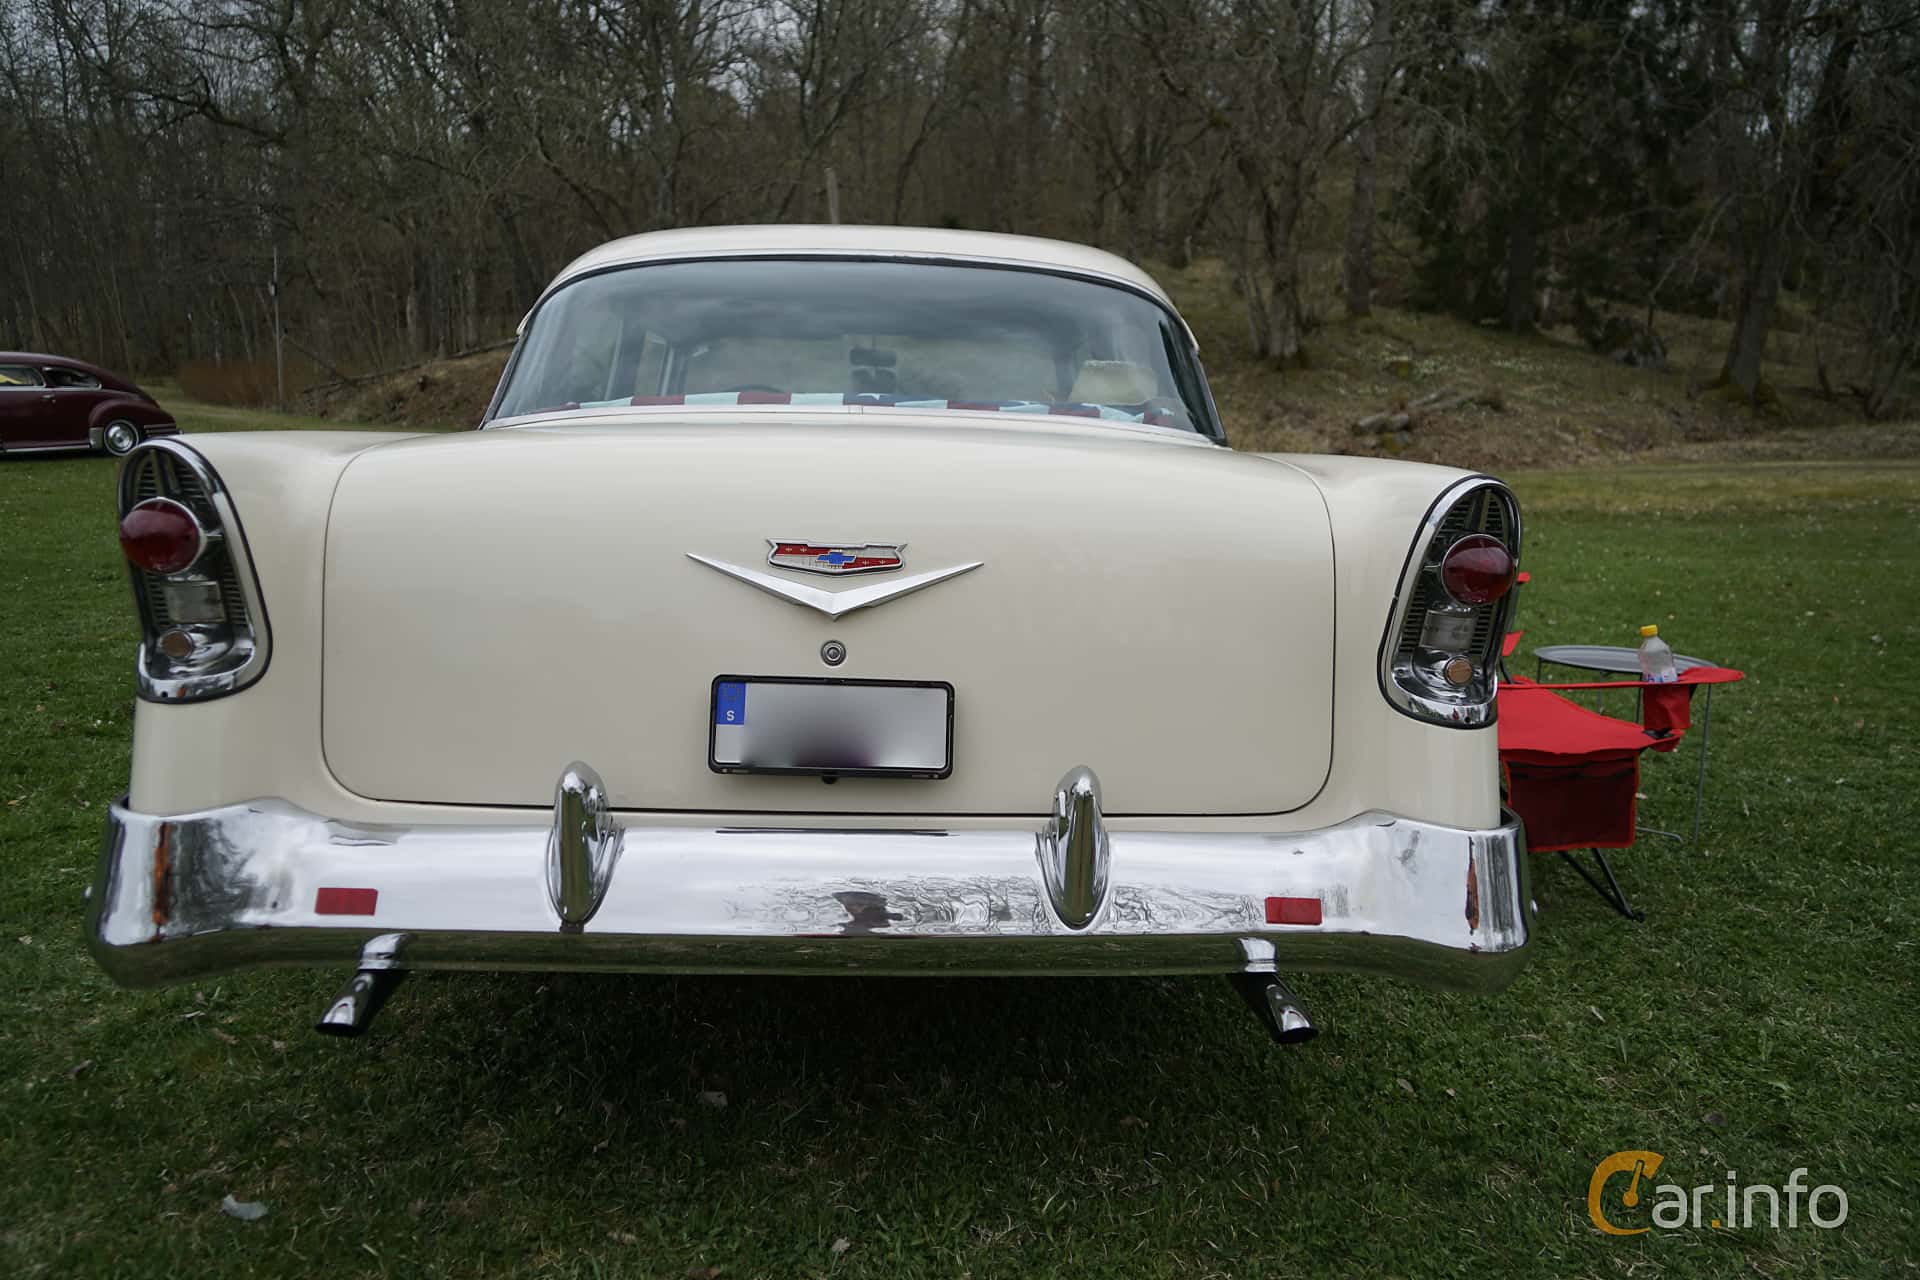 Chevrolet Bel Air 4-door Sedan 4.3 V8 Powerglide, 173hp, 1956 at Classic Cars Sunby Gård 2017